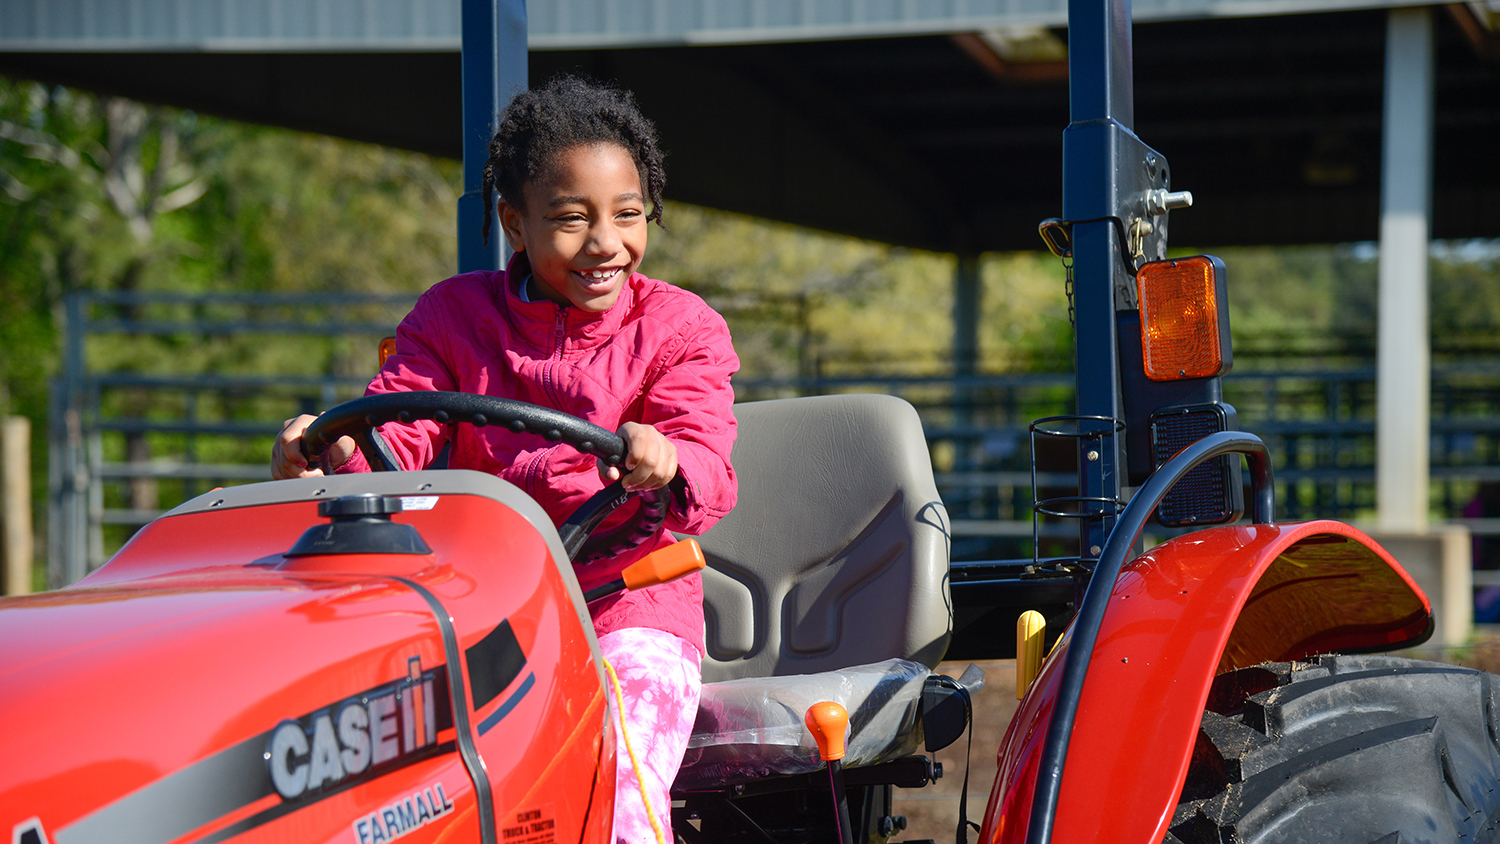 Child driving red tractor